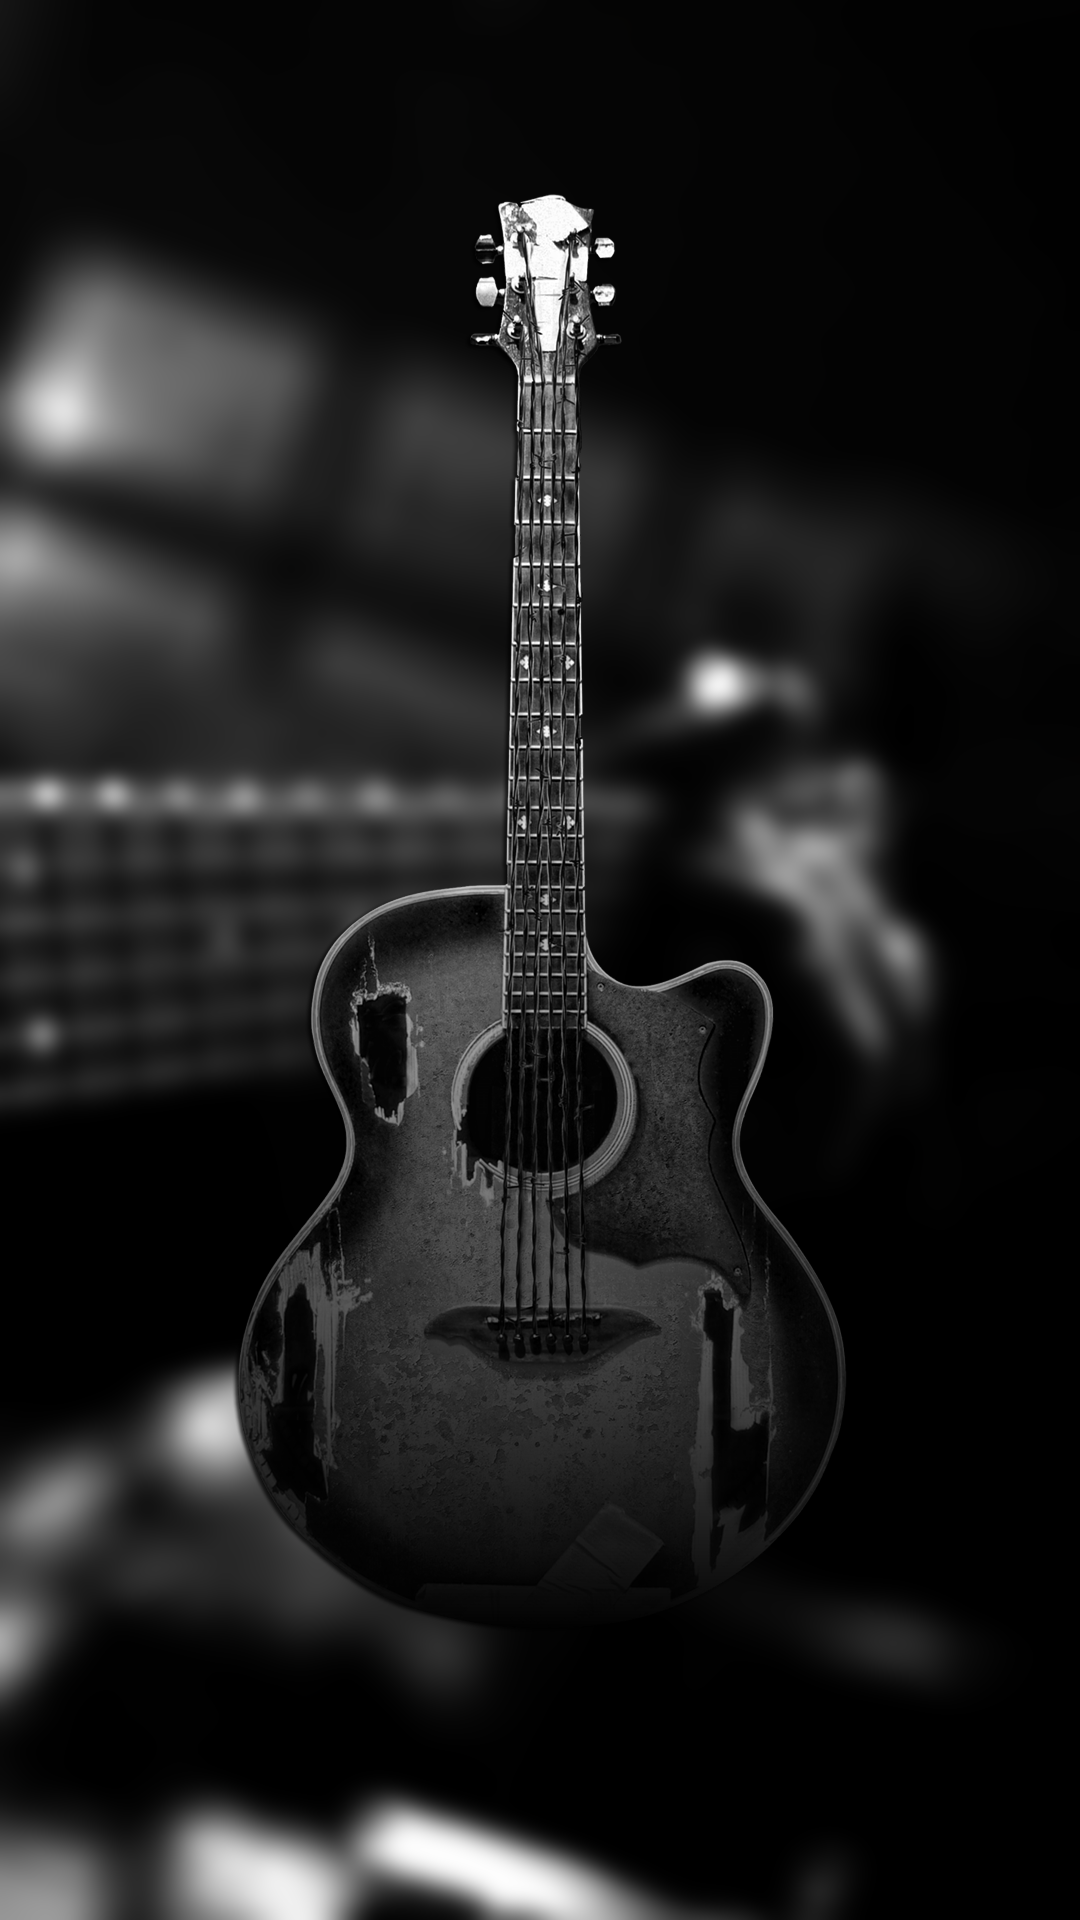 Black Guitar Wallpaper Posted By Zoey Thompson